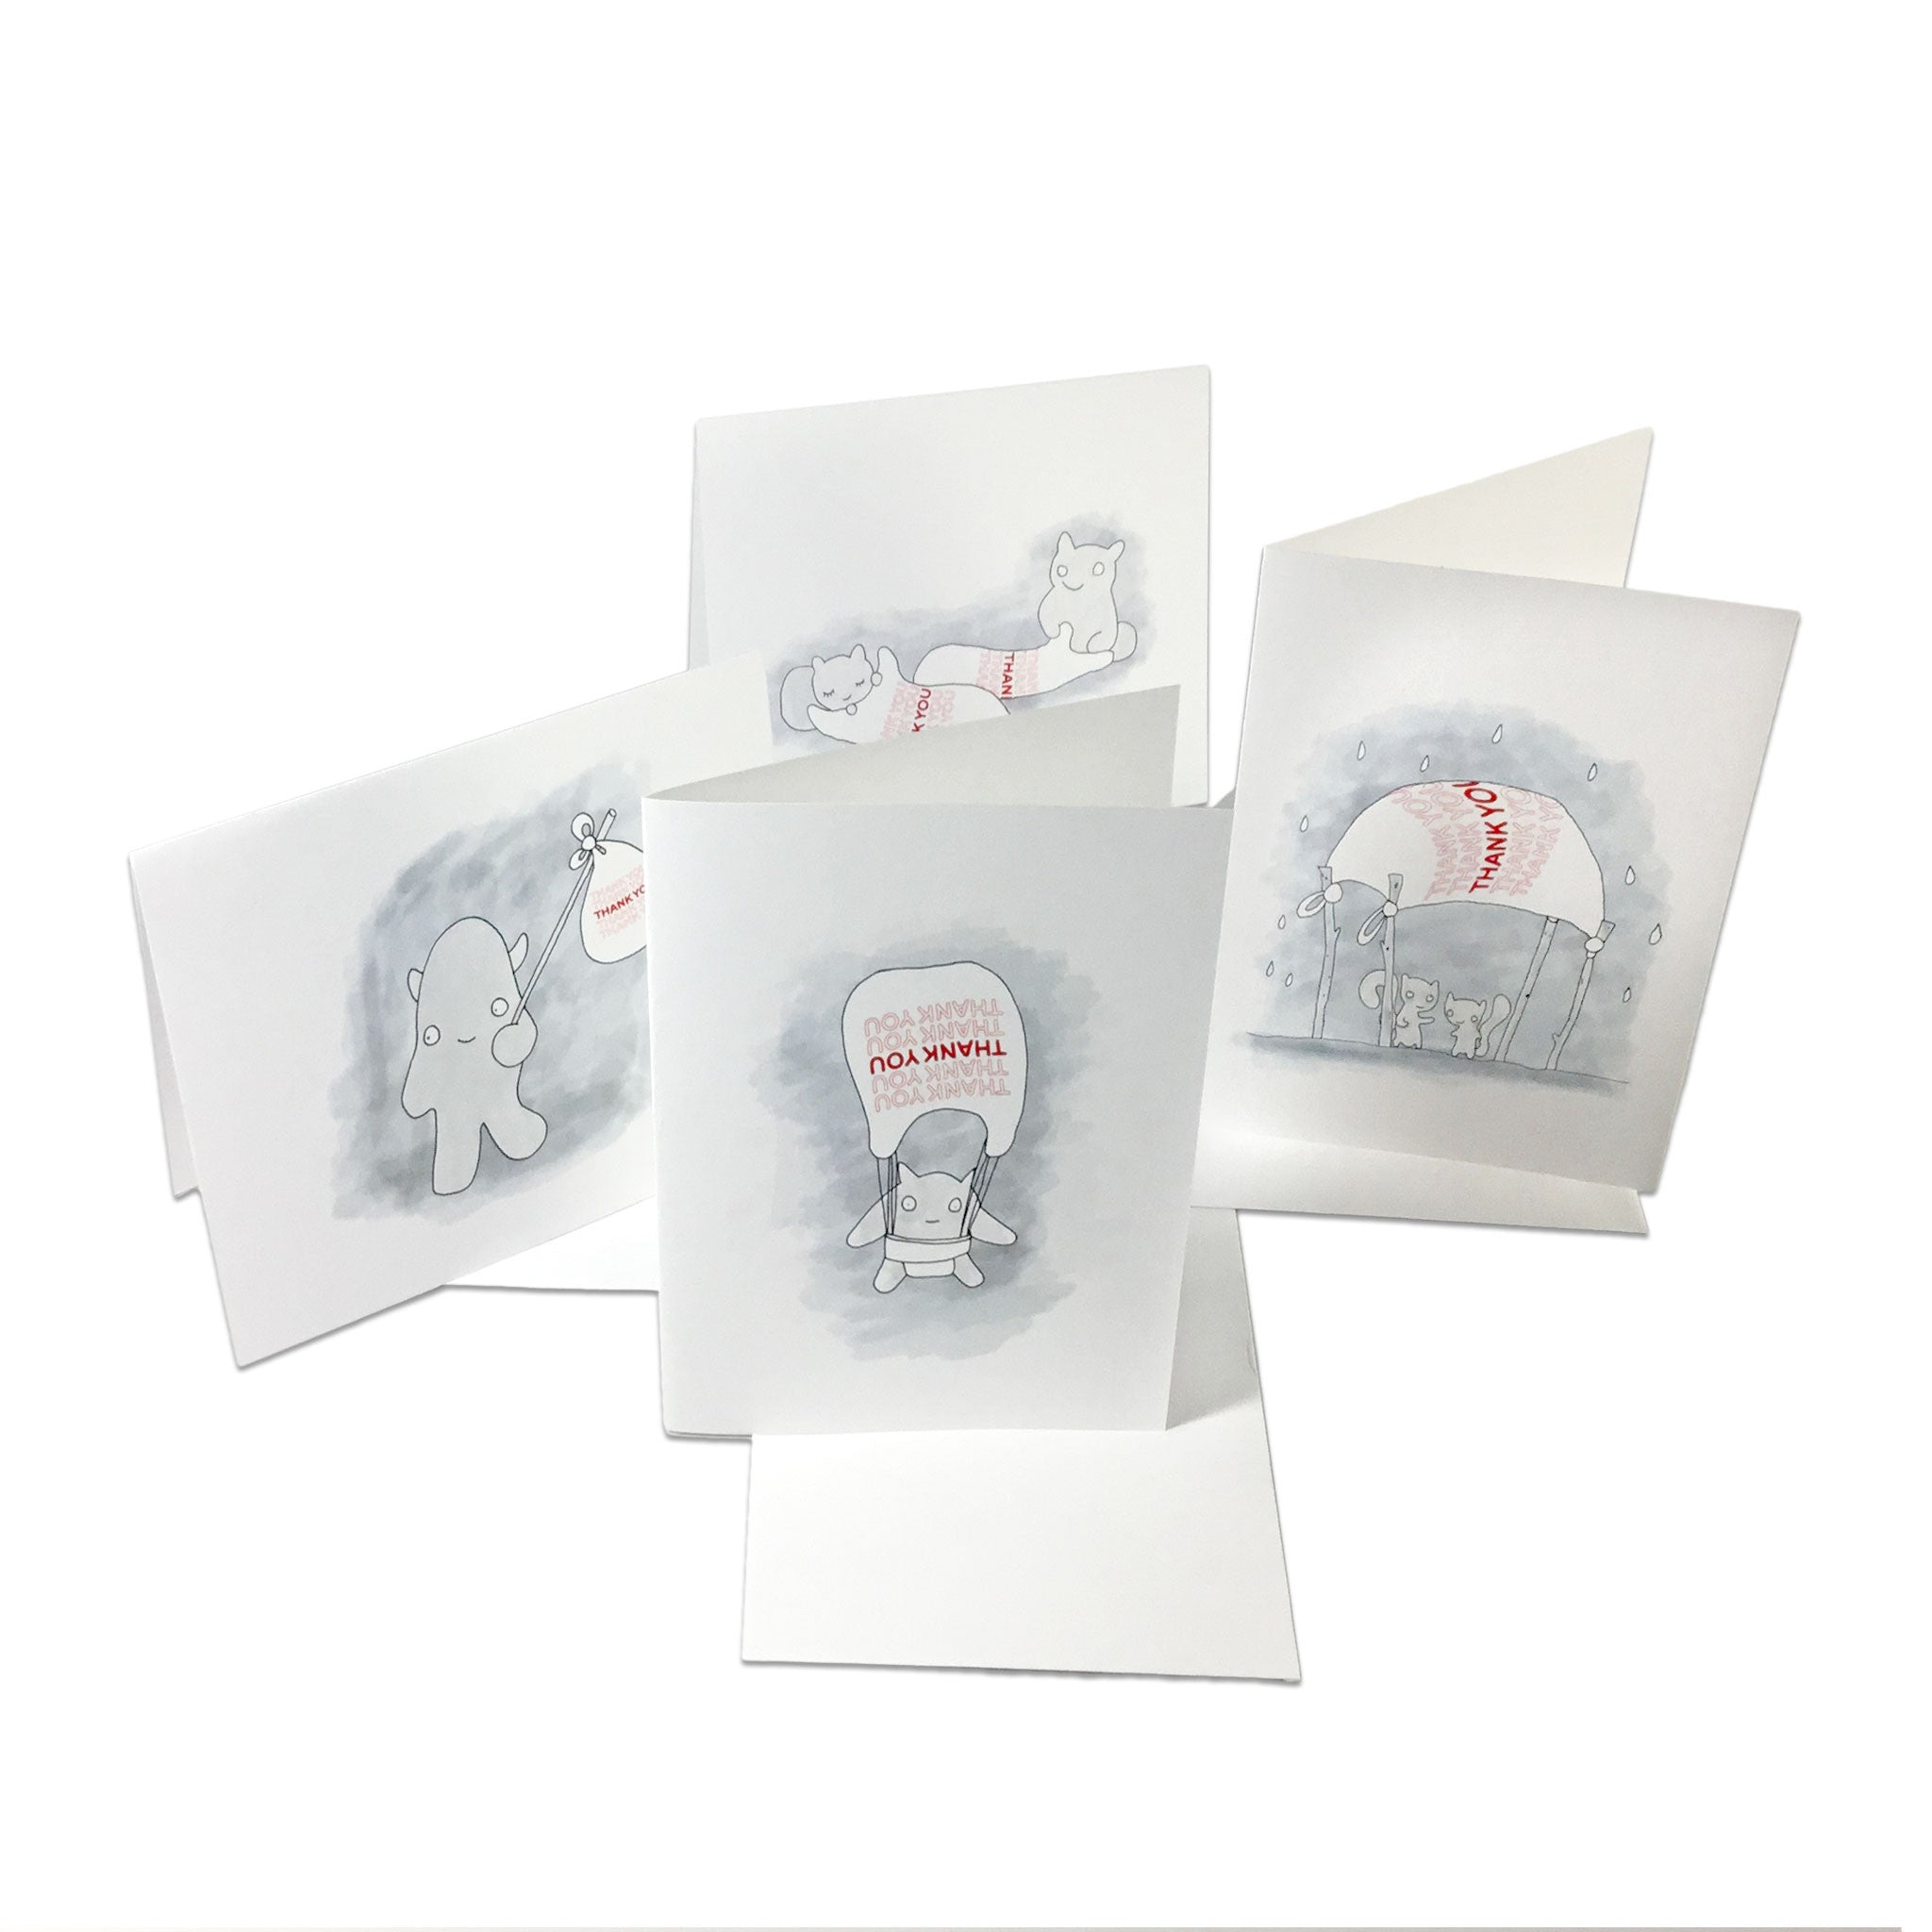 ThankYouThankYou Notecards - Vol. 1 and 2 (Set of 16)